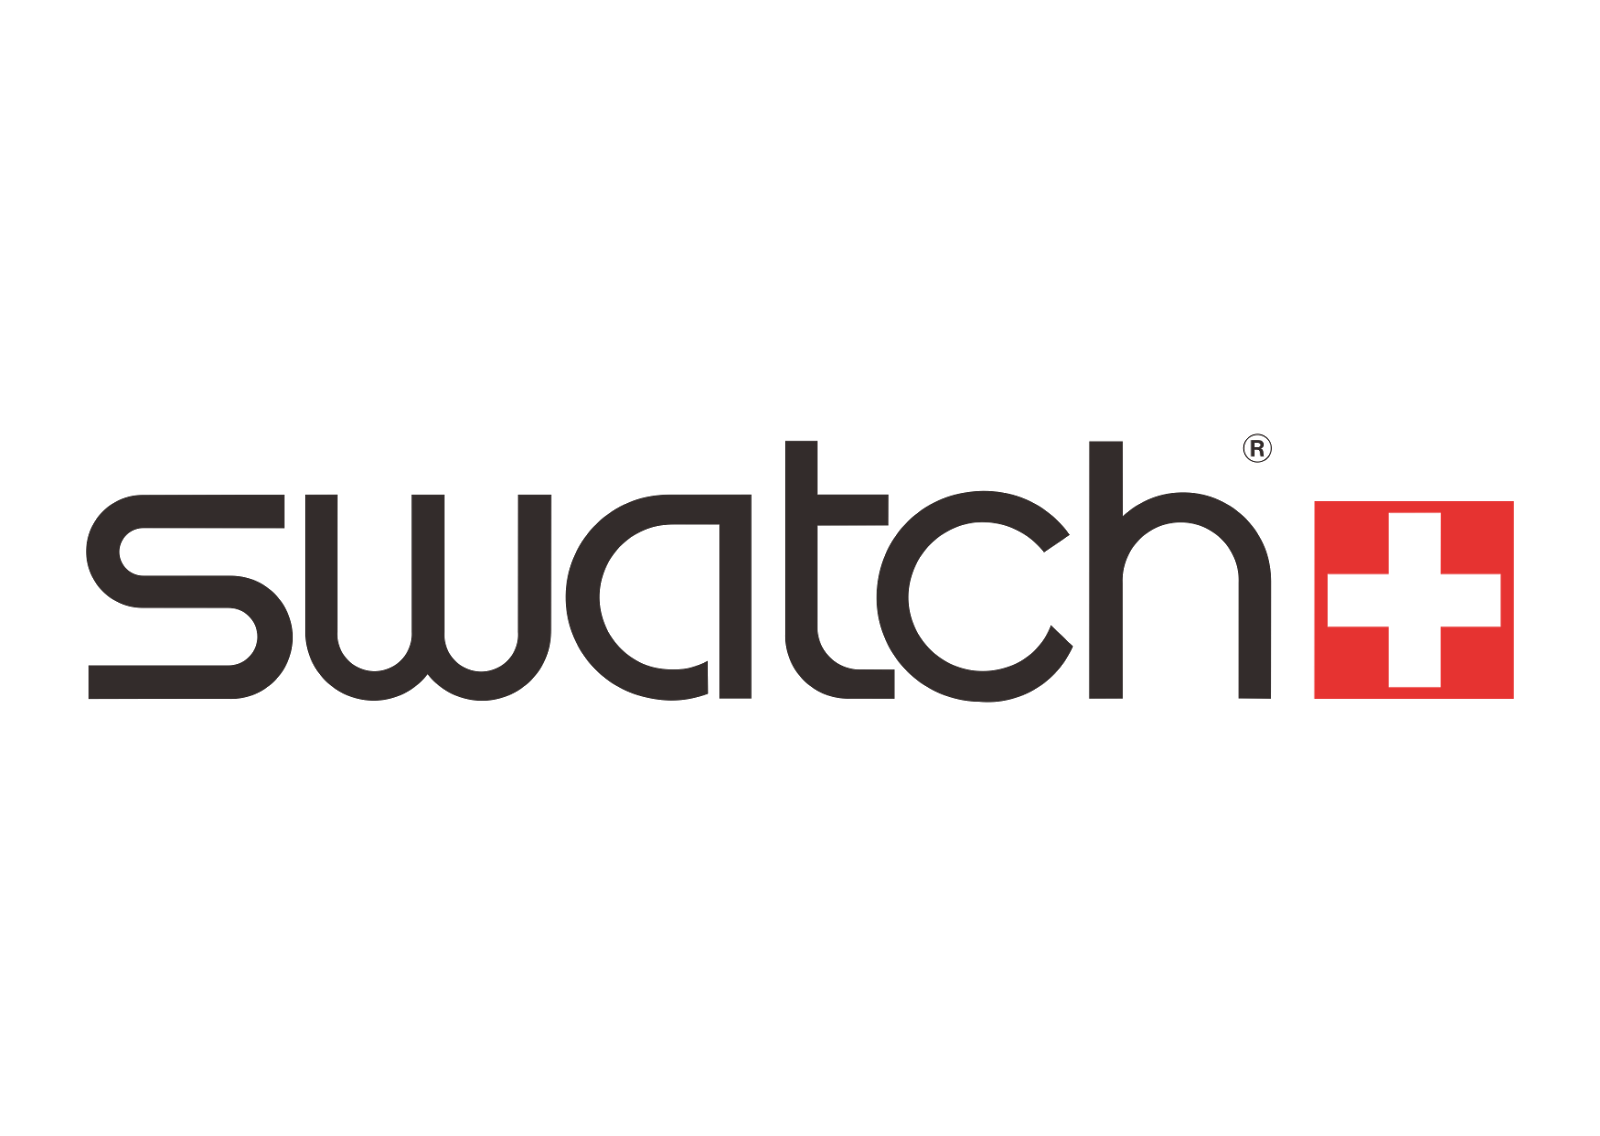 Swatch-vector-logo.png